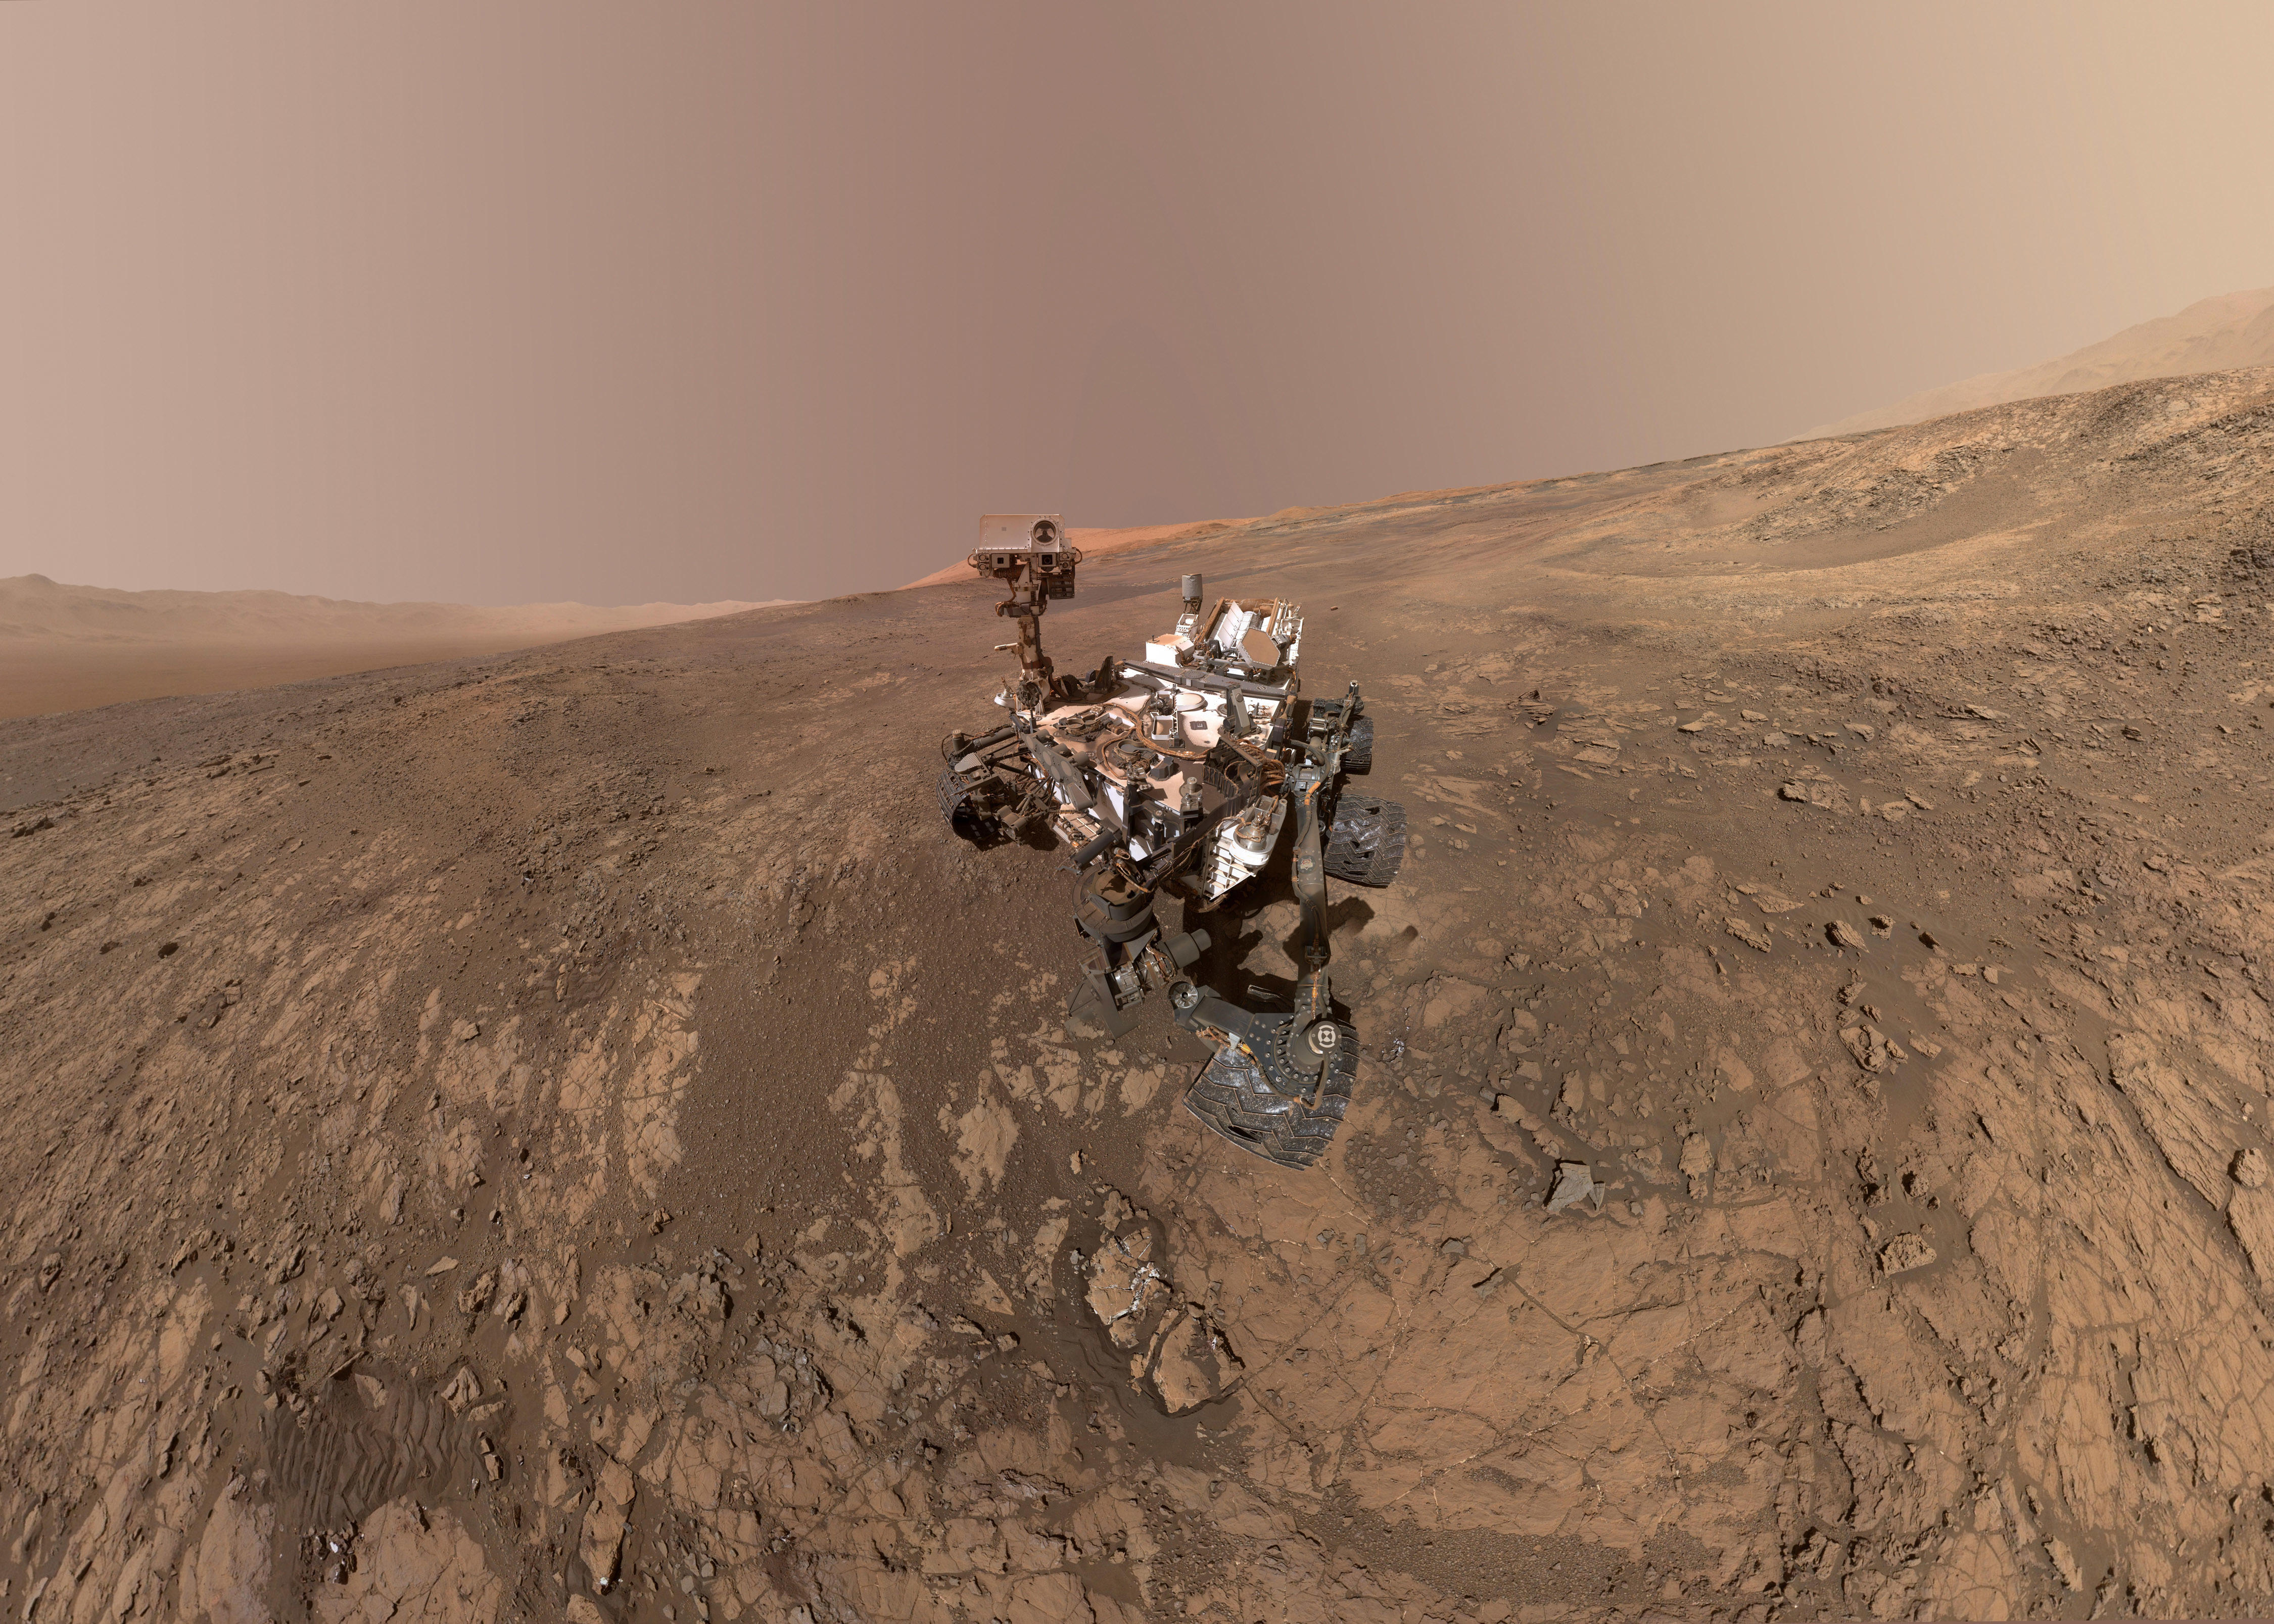 Mars rover selfies turned into stunning self-portrait - CBS News